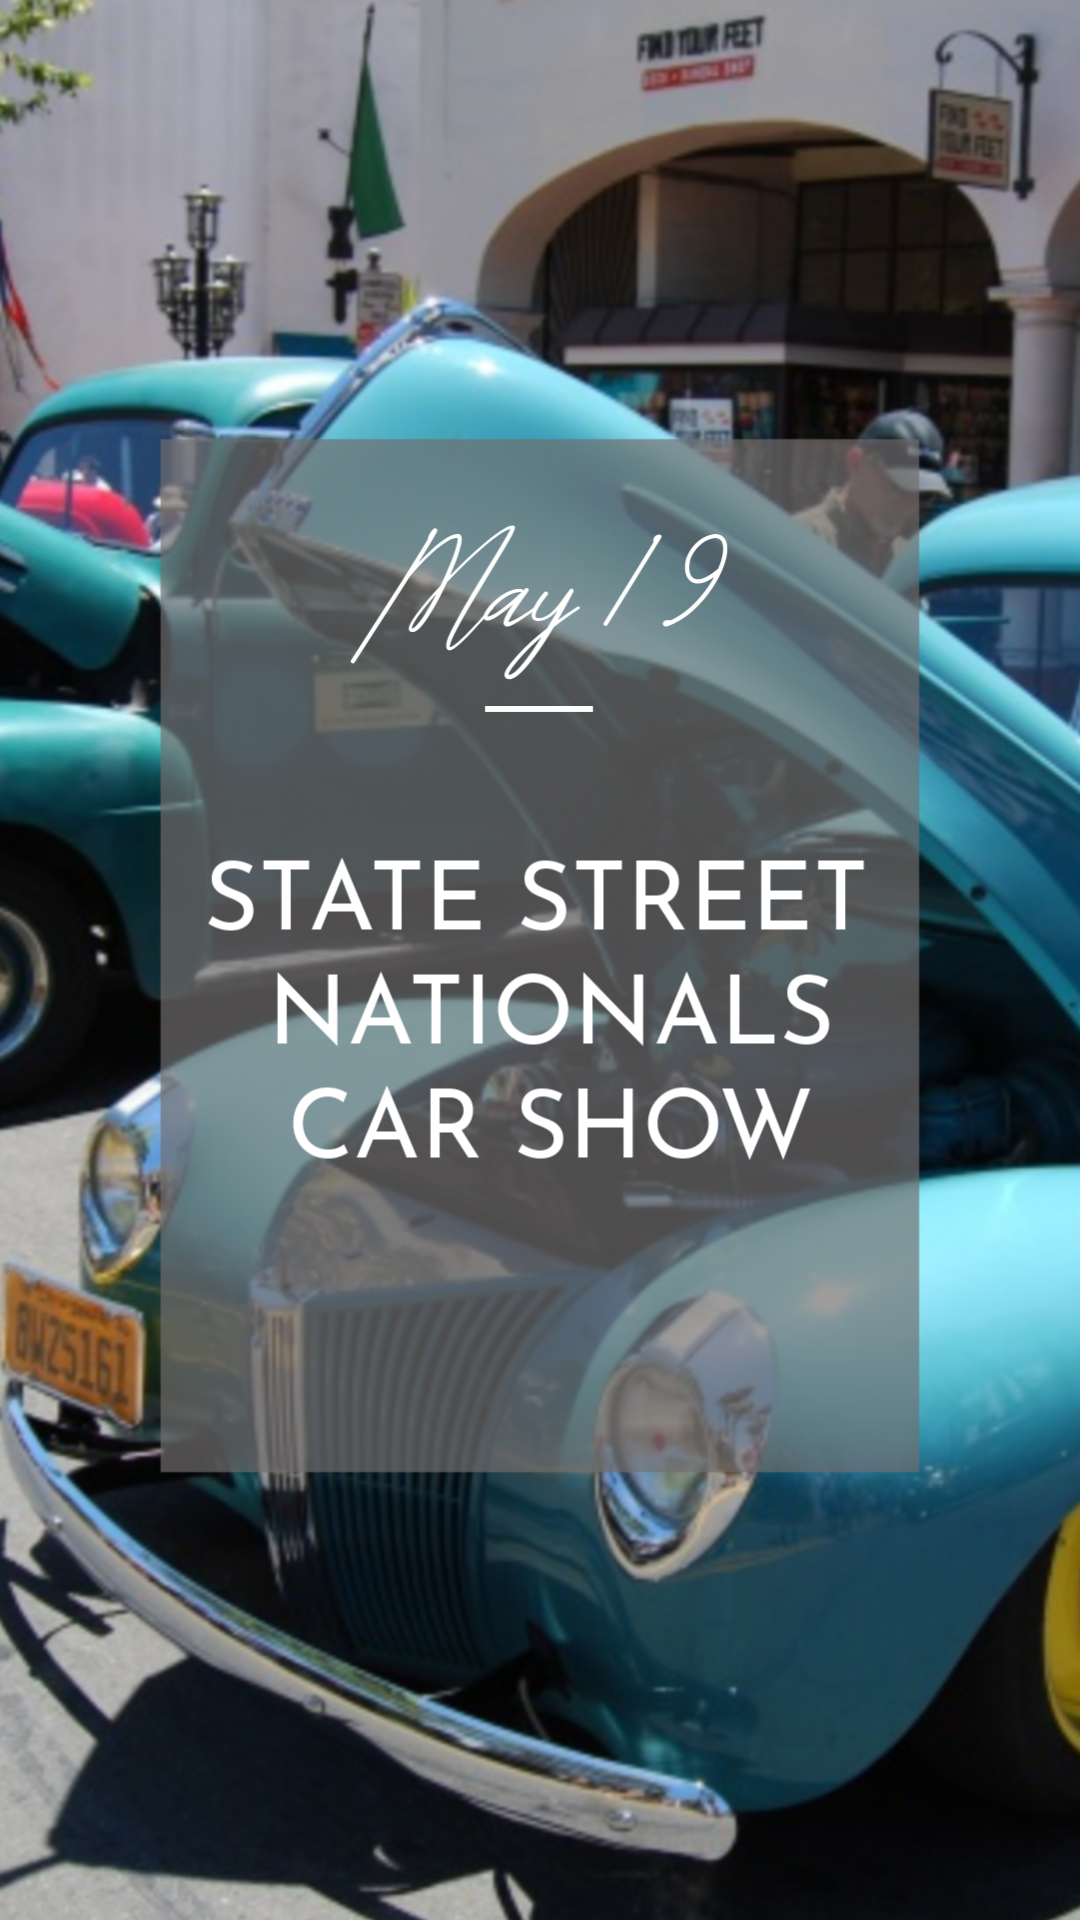 May 19 State Street Nationals Car Show.png